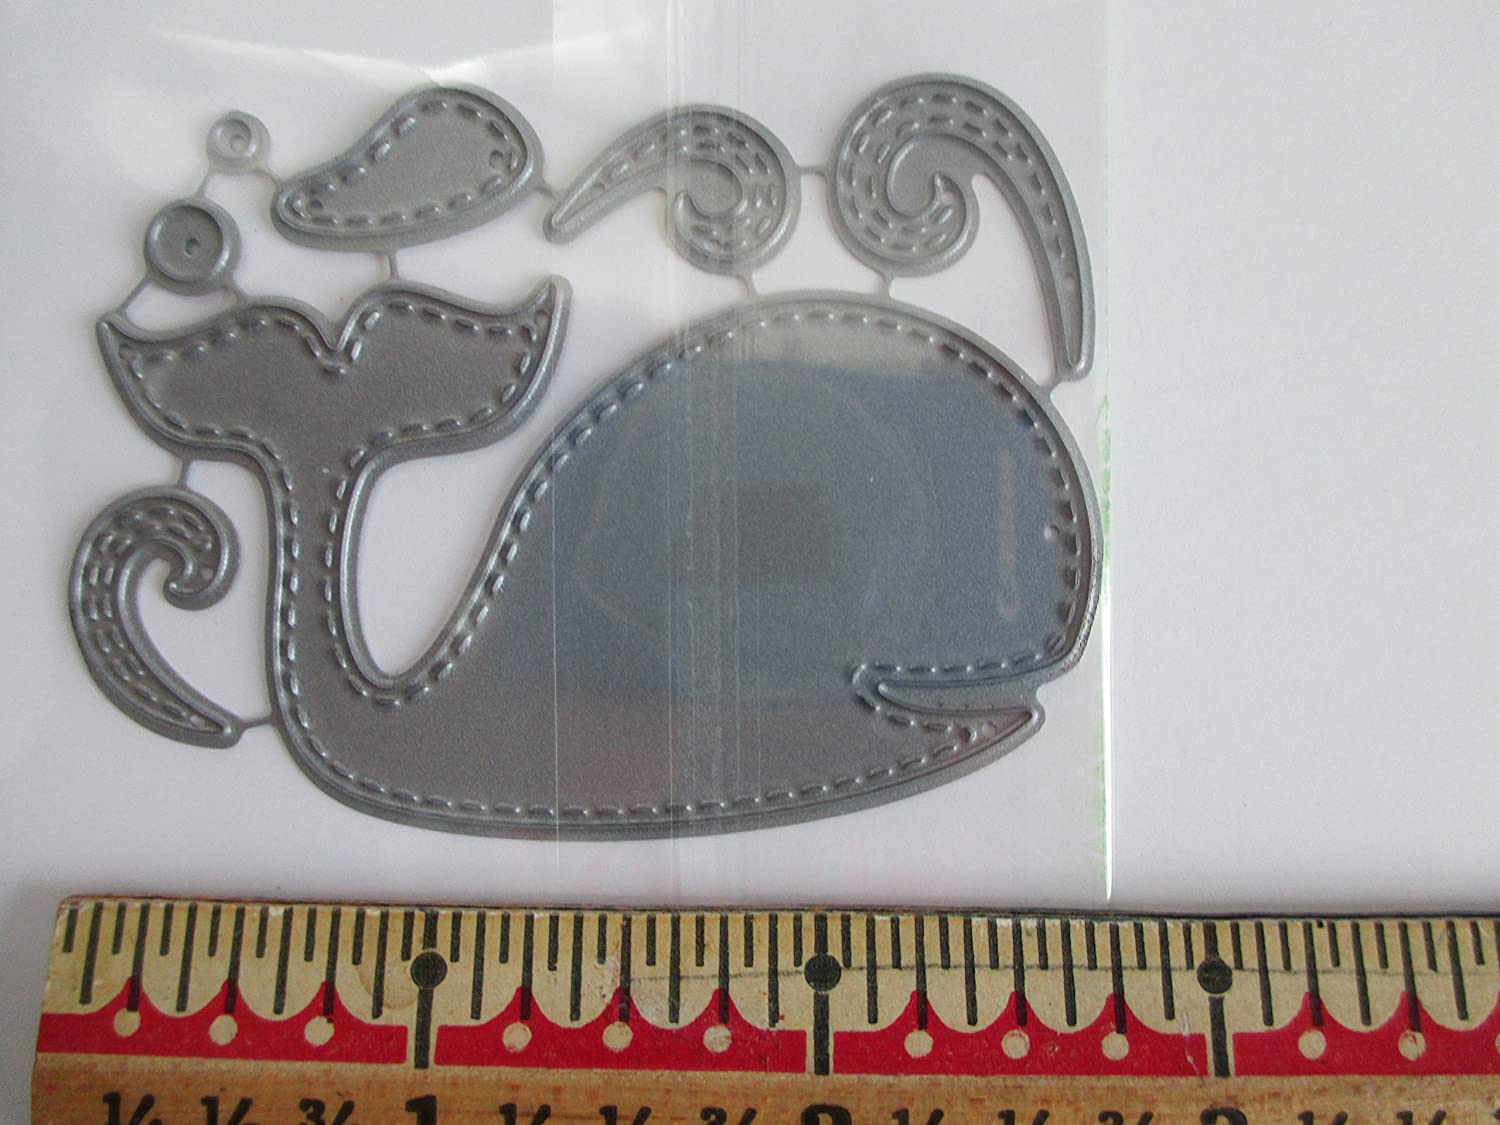 Impression Obsession craft die Patchwork Whale